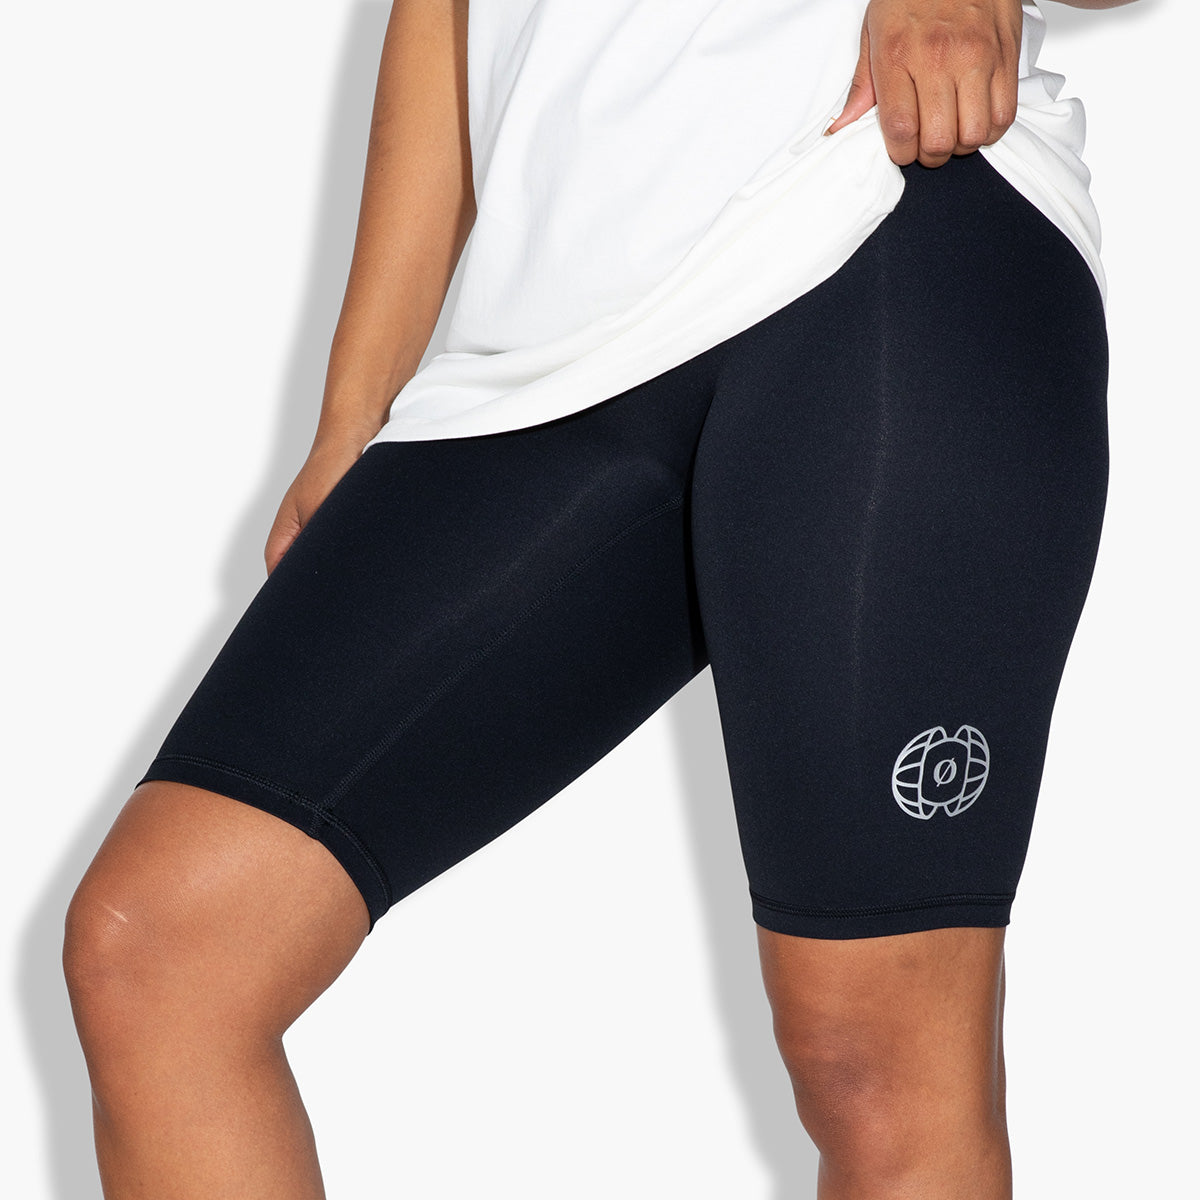 Women's Bike Shorts (Black)